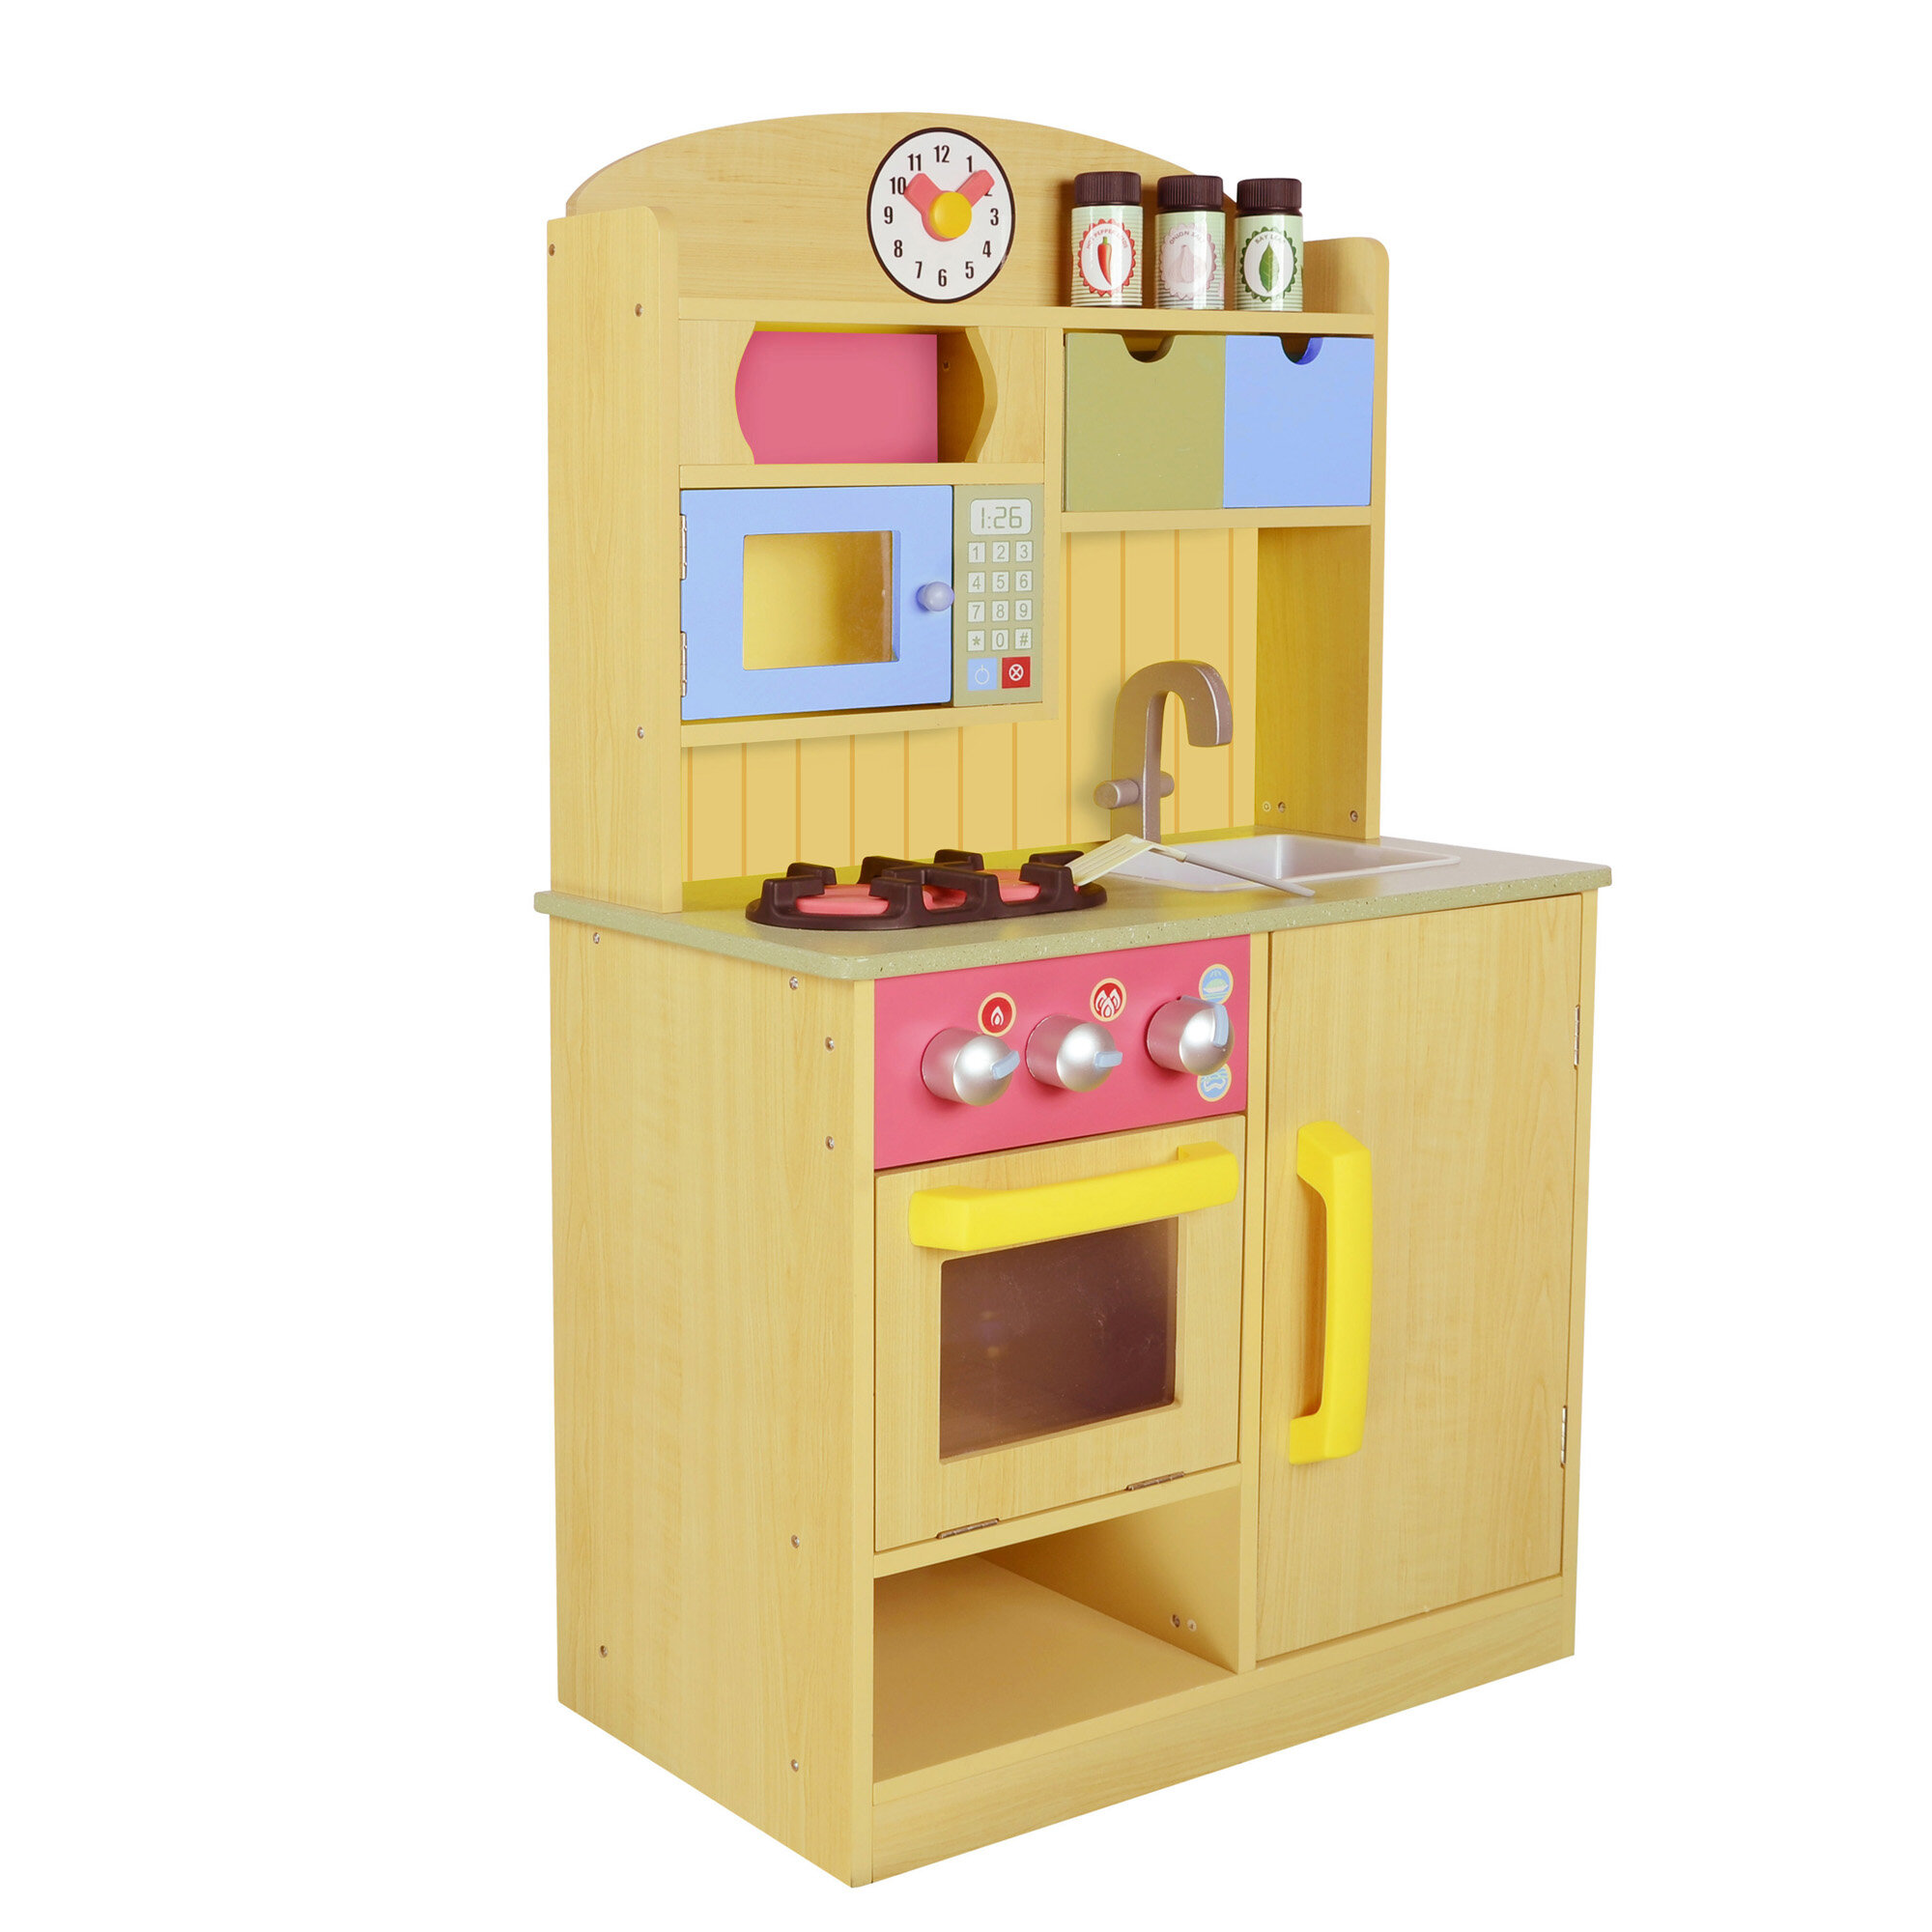 play gift sets ideas kitchen kids for best hape wooden white gourmet wonderful